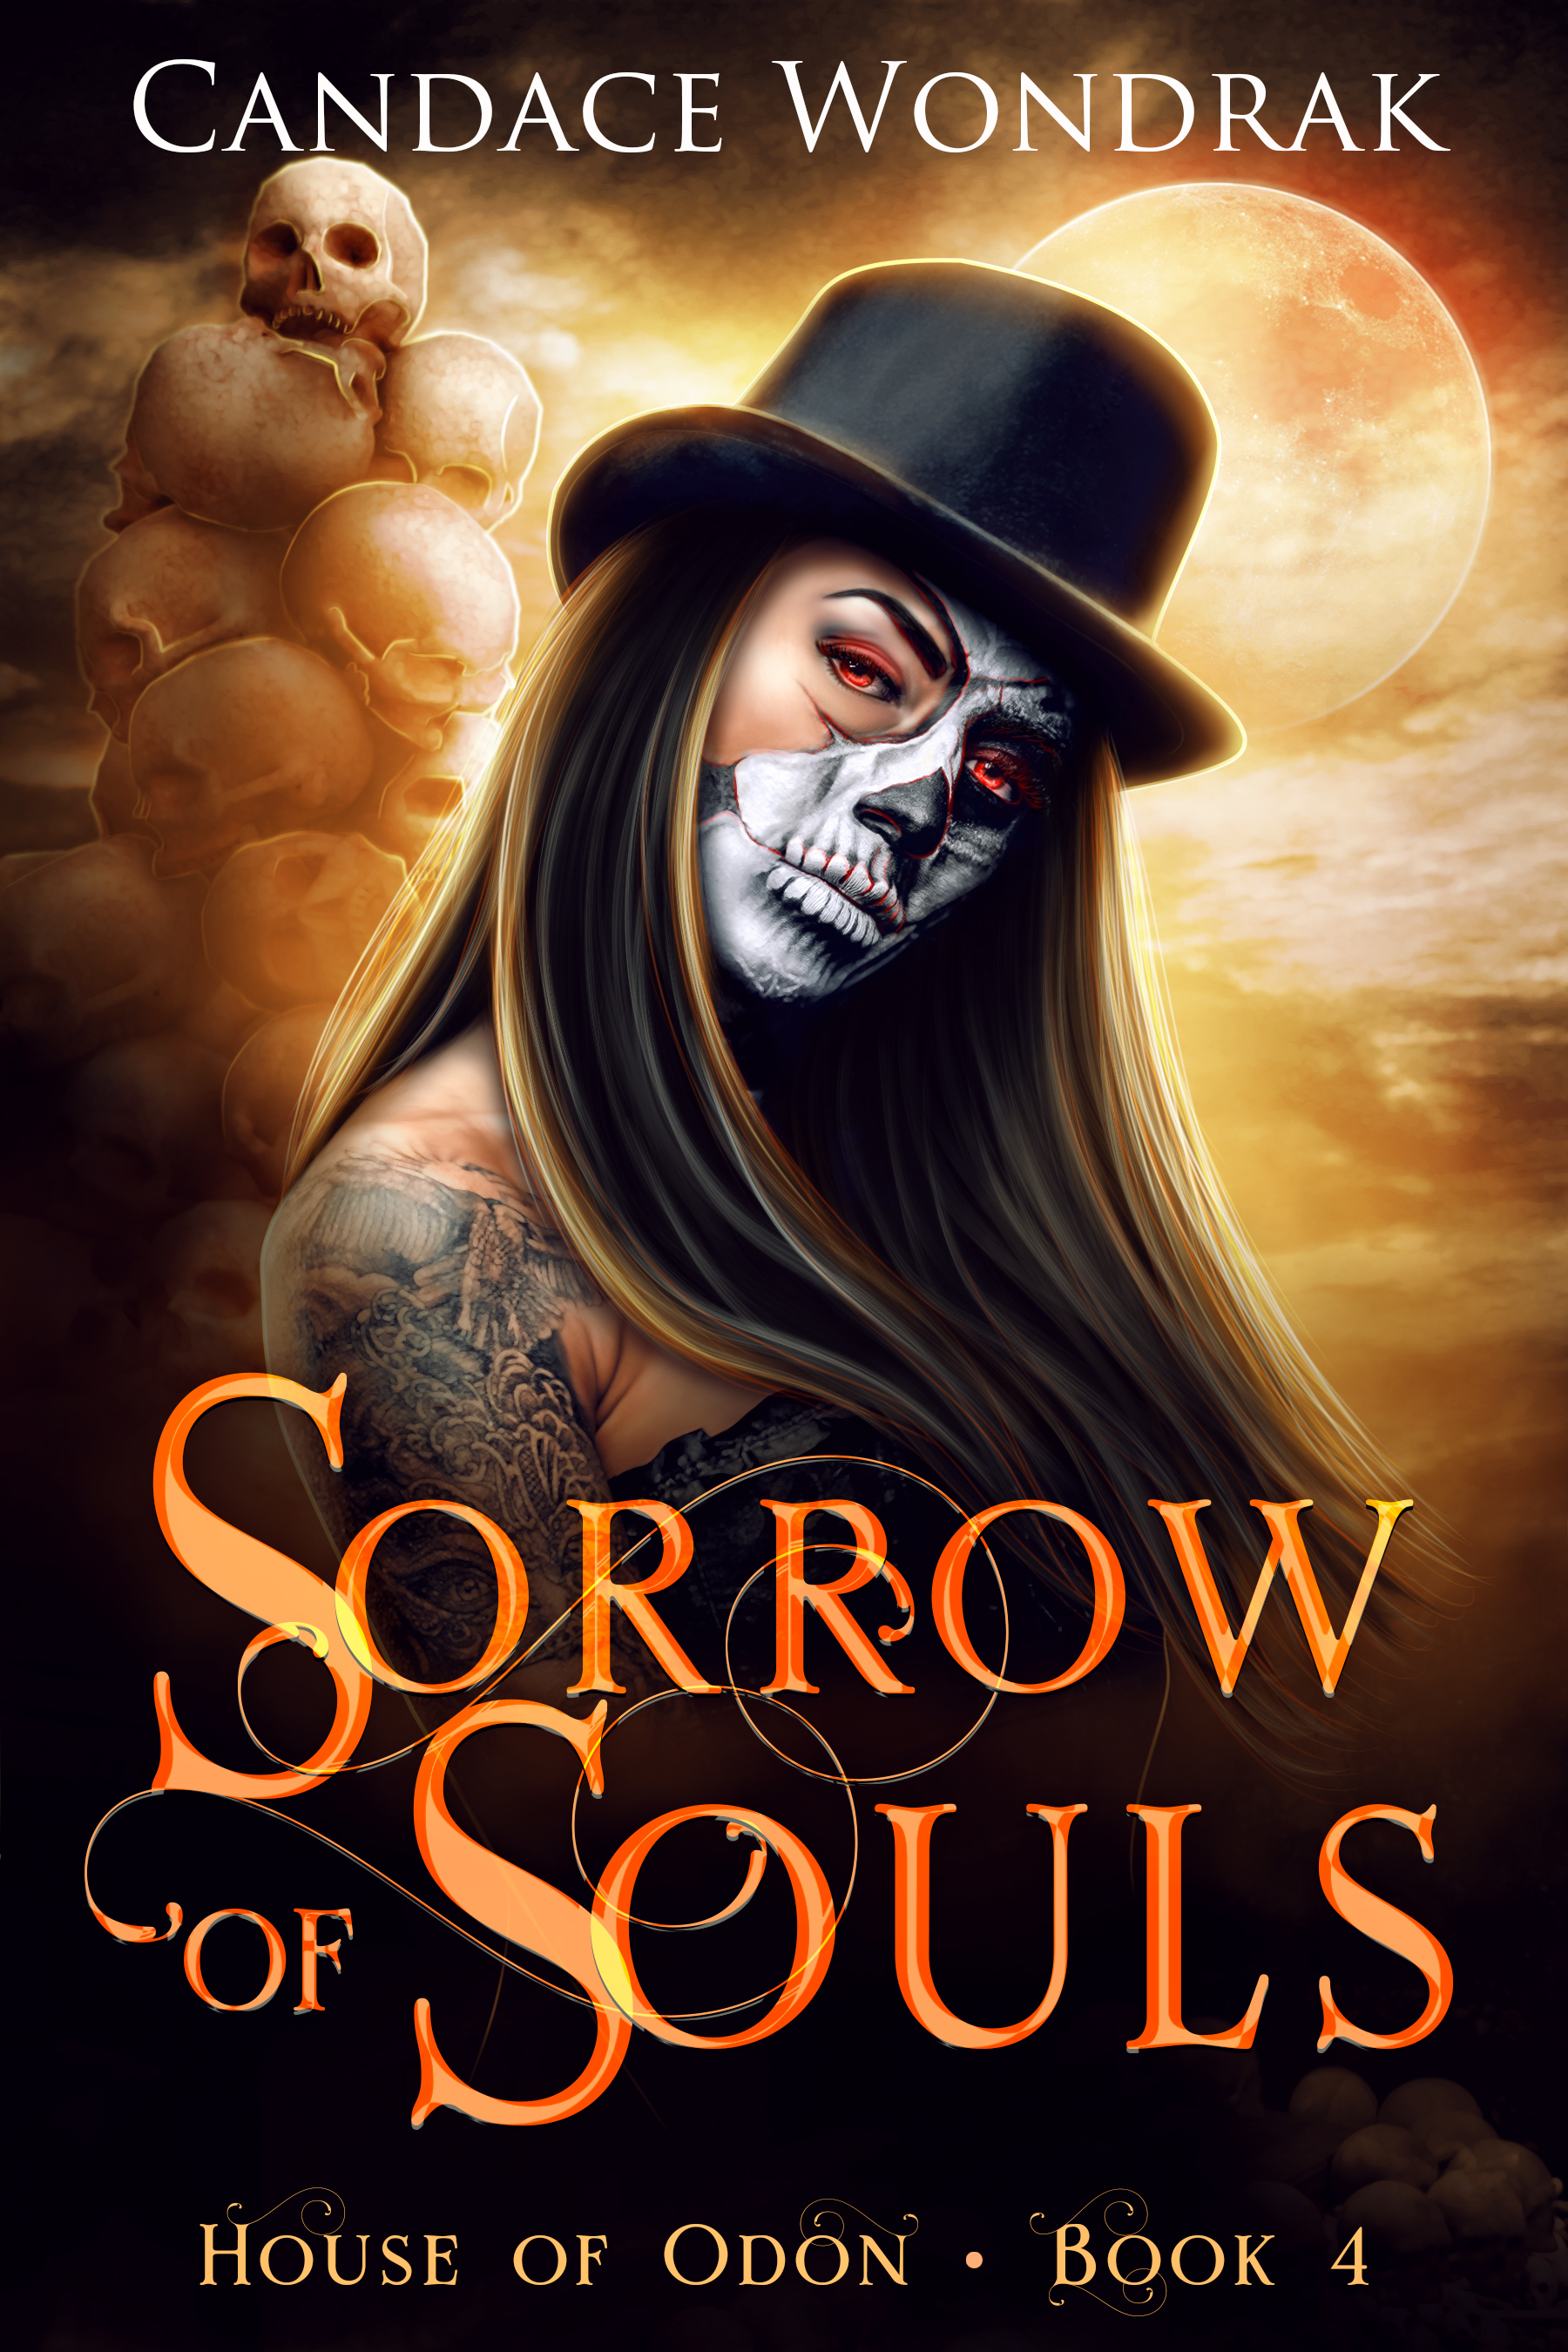 Sorrow of Souls